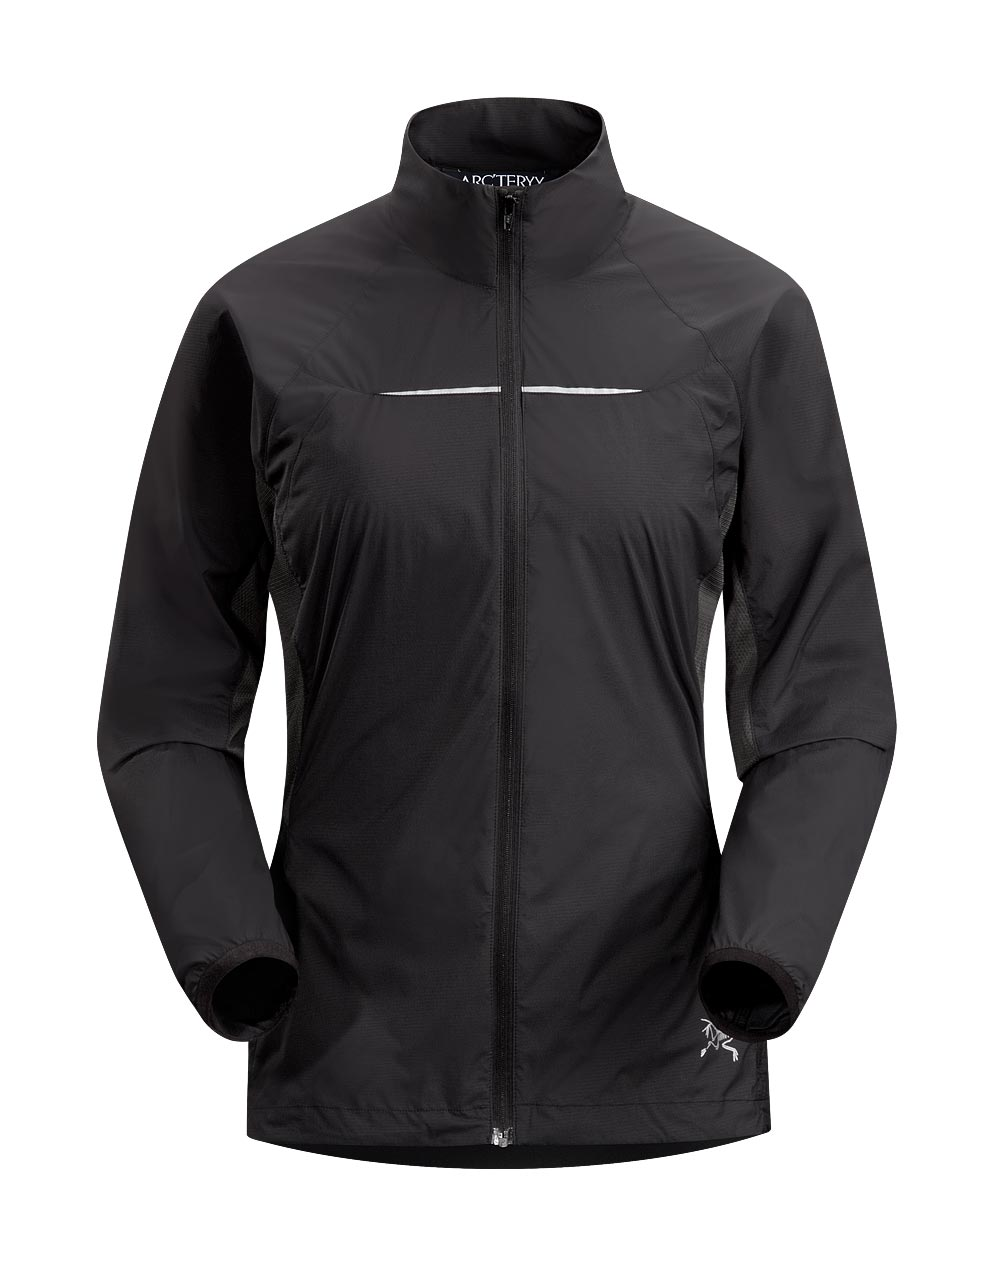 Arcteryx Black Cita Jacket - New